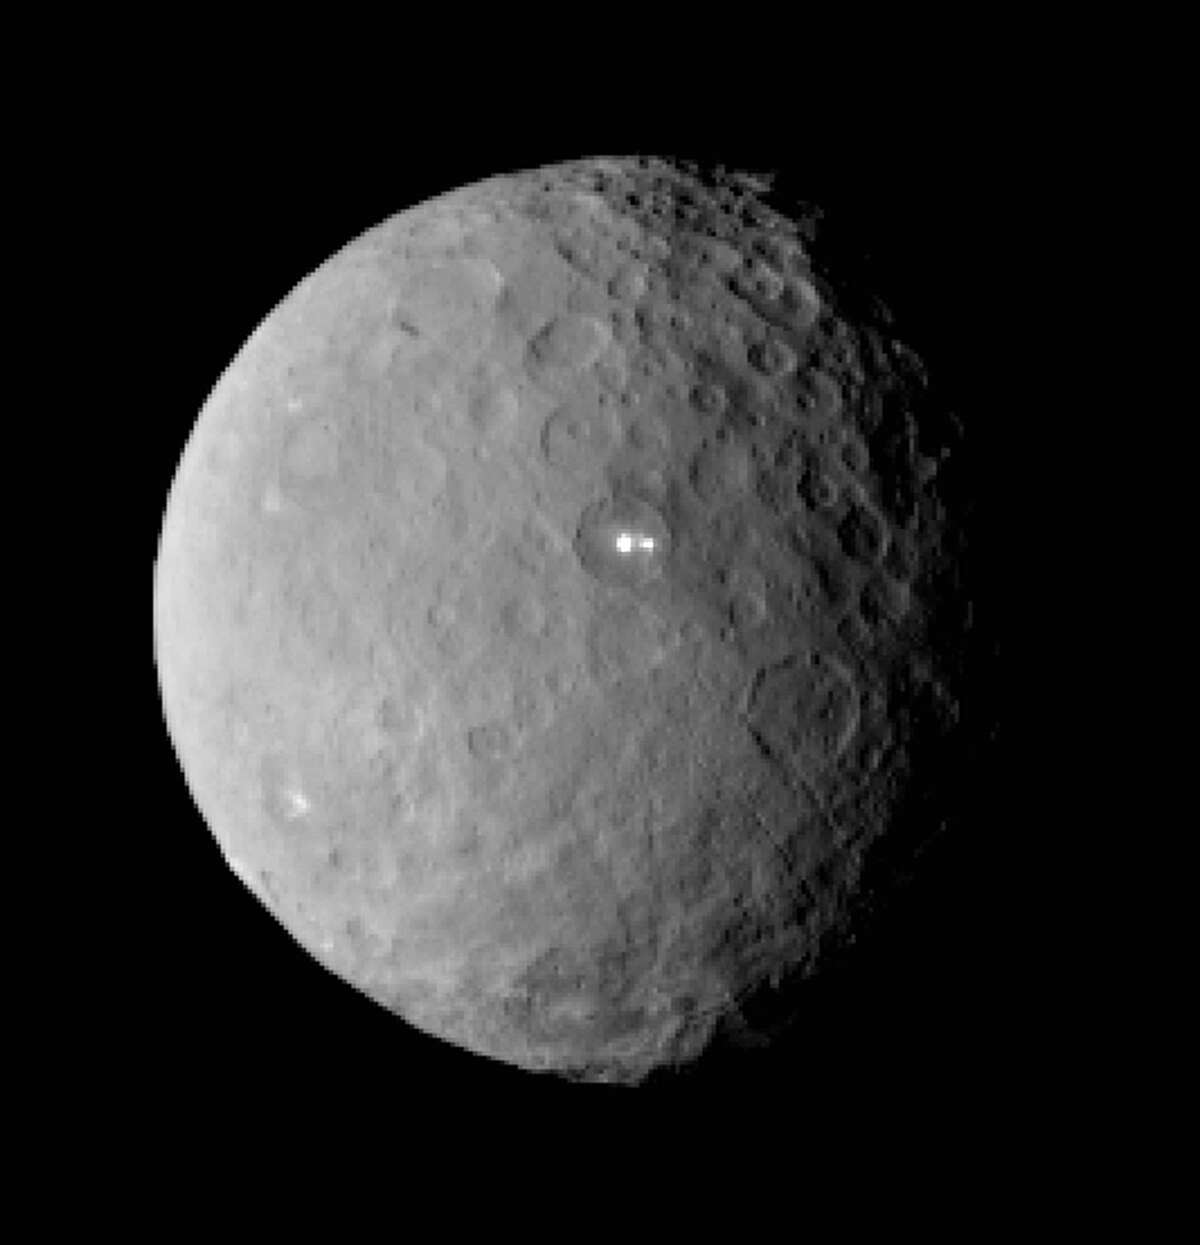 FILE - This Feb. 19, 2015 file image provided by NASA shows the dwarf planet Ceres, taken by the space agency's Dawn spacecraft from a distance of nearly 29,000 miles (46,000 kilometers). On Friday, March 6, 2015, NASAís Dawn spacecraft arrives at the mysterious dwarf planet located in the asteroid belt between Mars and Jupiter after a nearly eight-year journey. Dawn, which previously visited Vesta, also in the asteroid belt, has already beamed back images of Ceres as it closes in. (AP Photo/NASA/JPL-Caltech/UCLA/MPS/DLR/IDA, File)